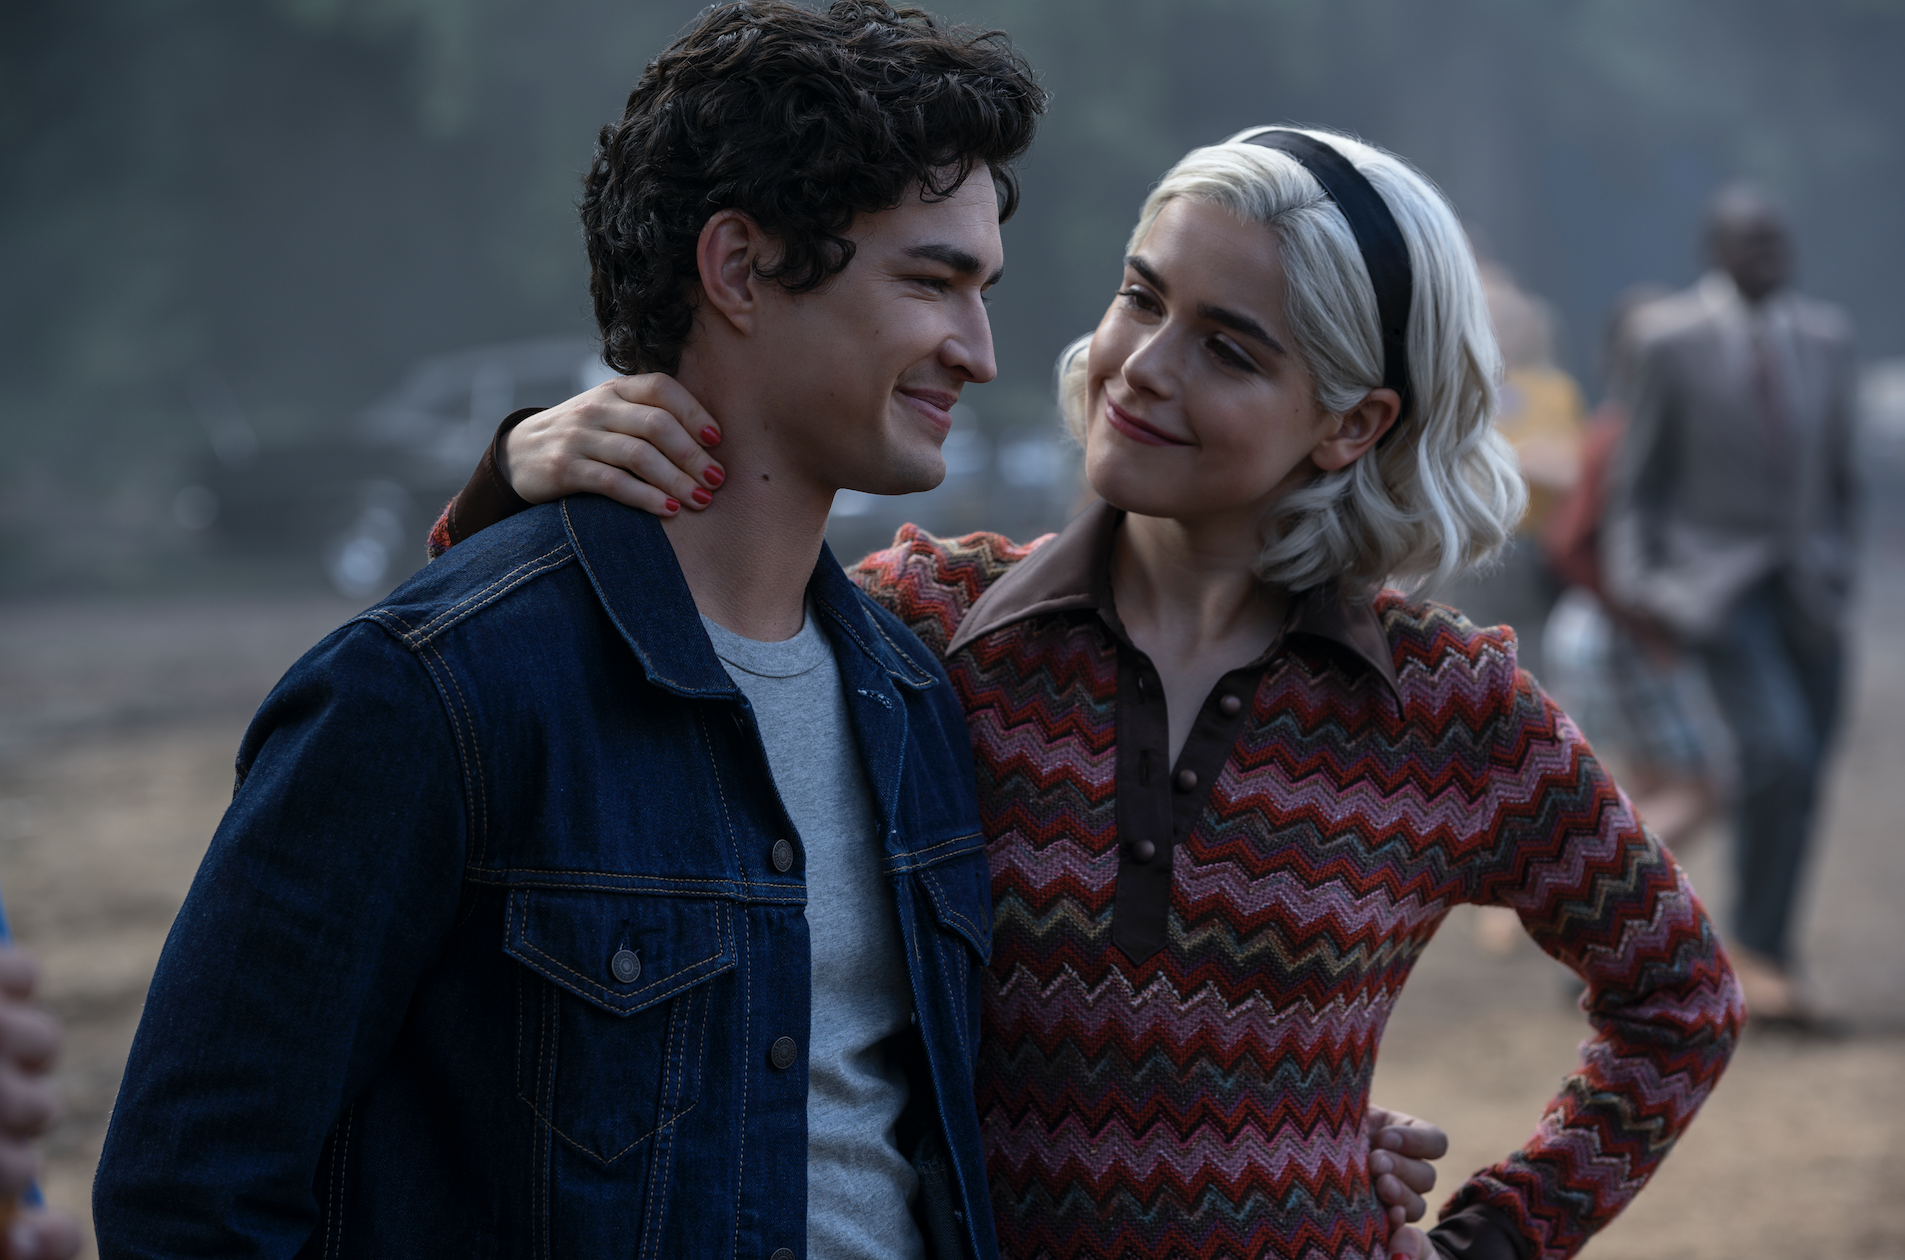 new season of the chilling adventures of sabrina